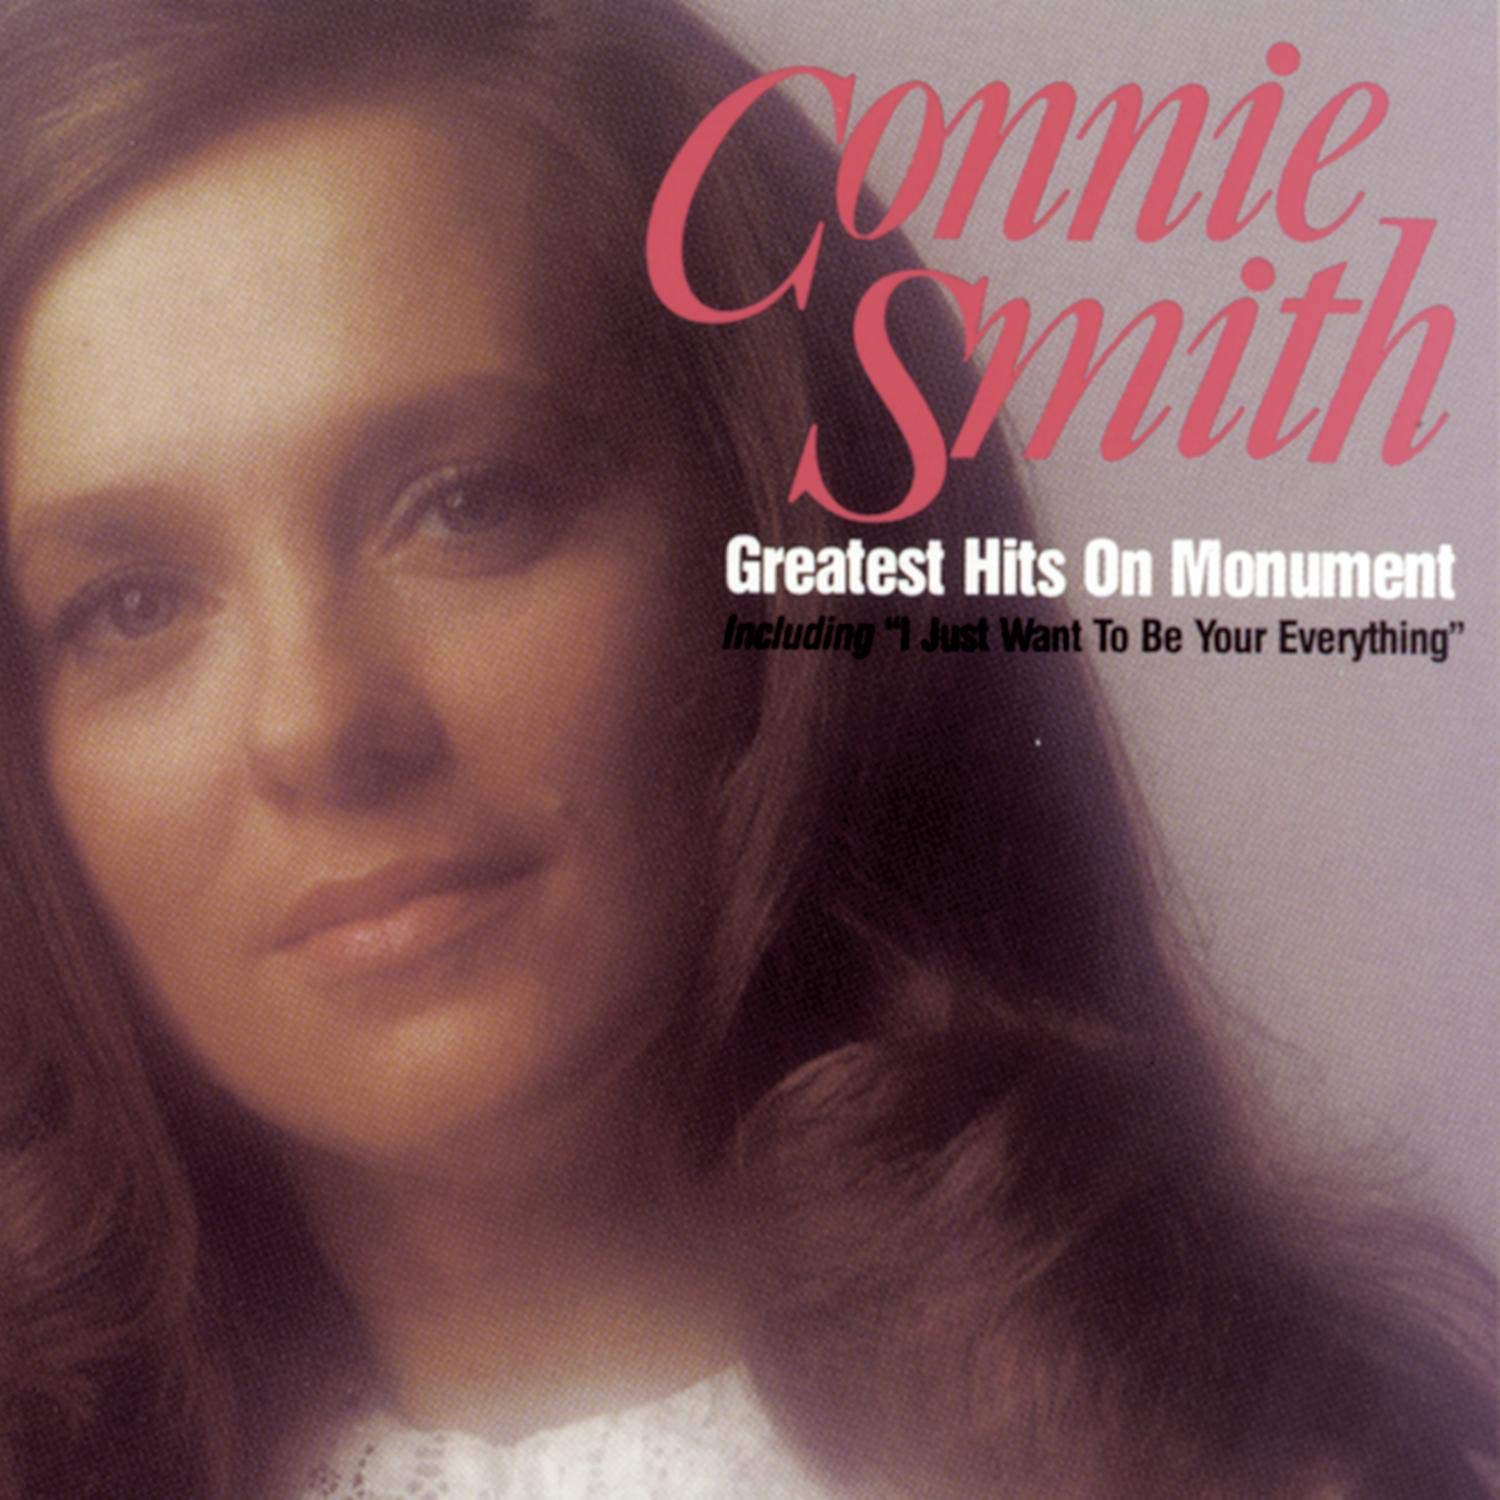 Connie Smith - Greatest Free shipping anywhere in the nation Hits Monument Limited time sale on